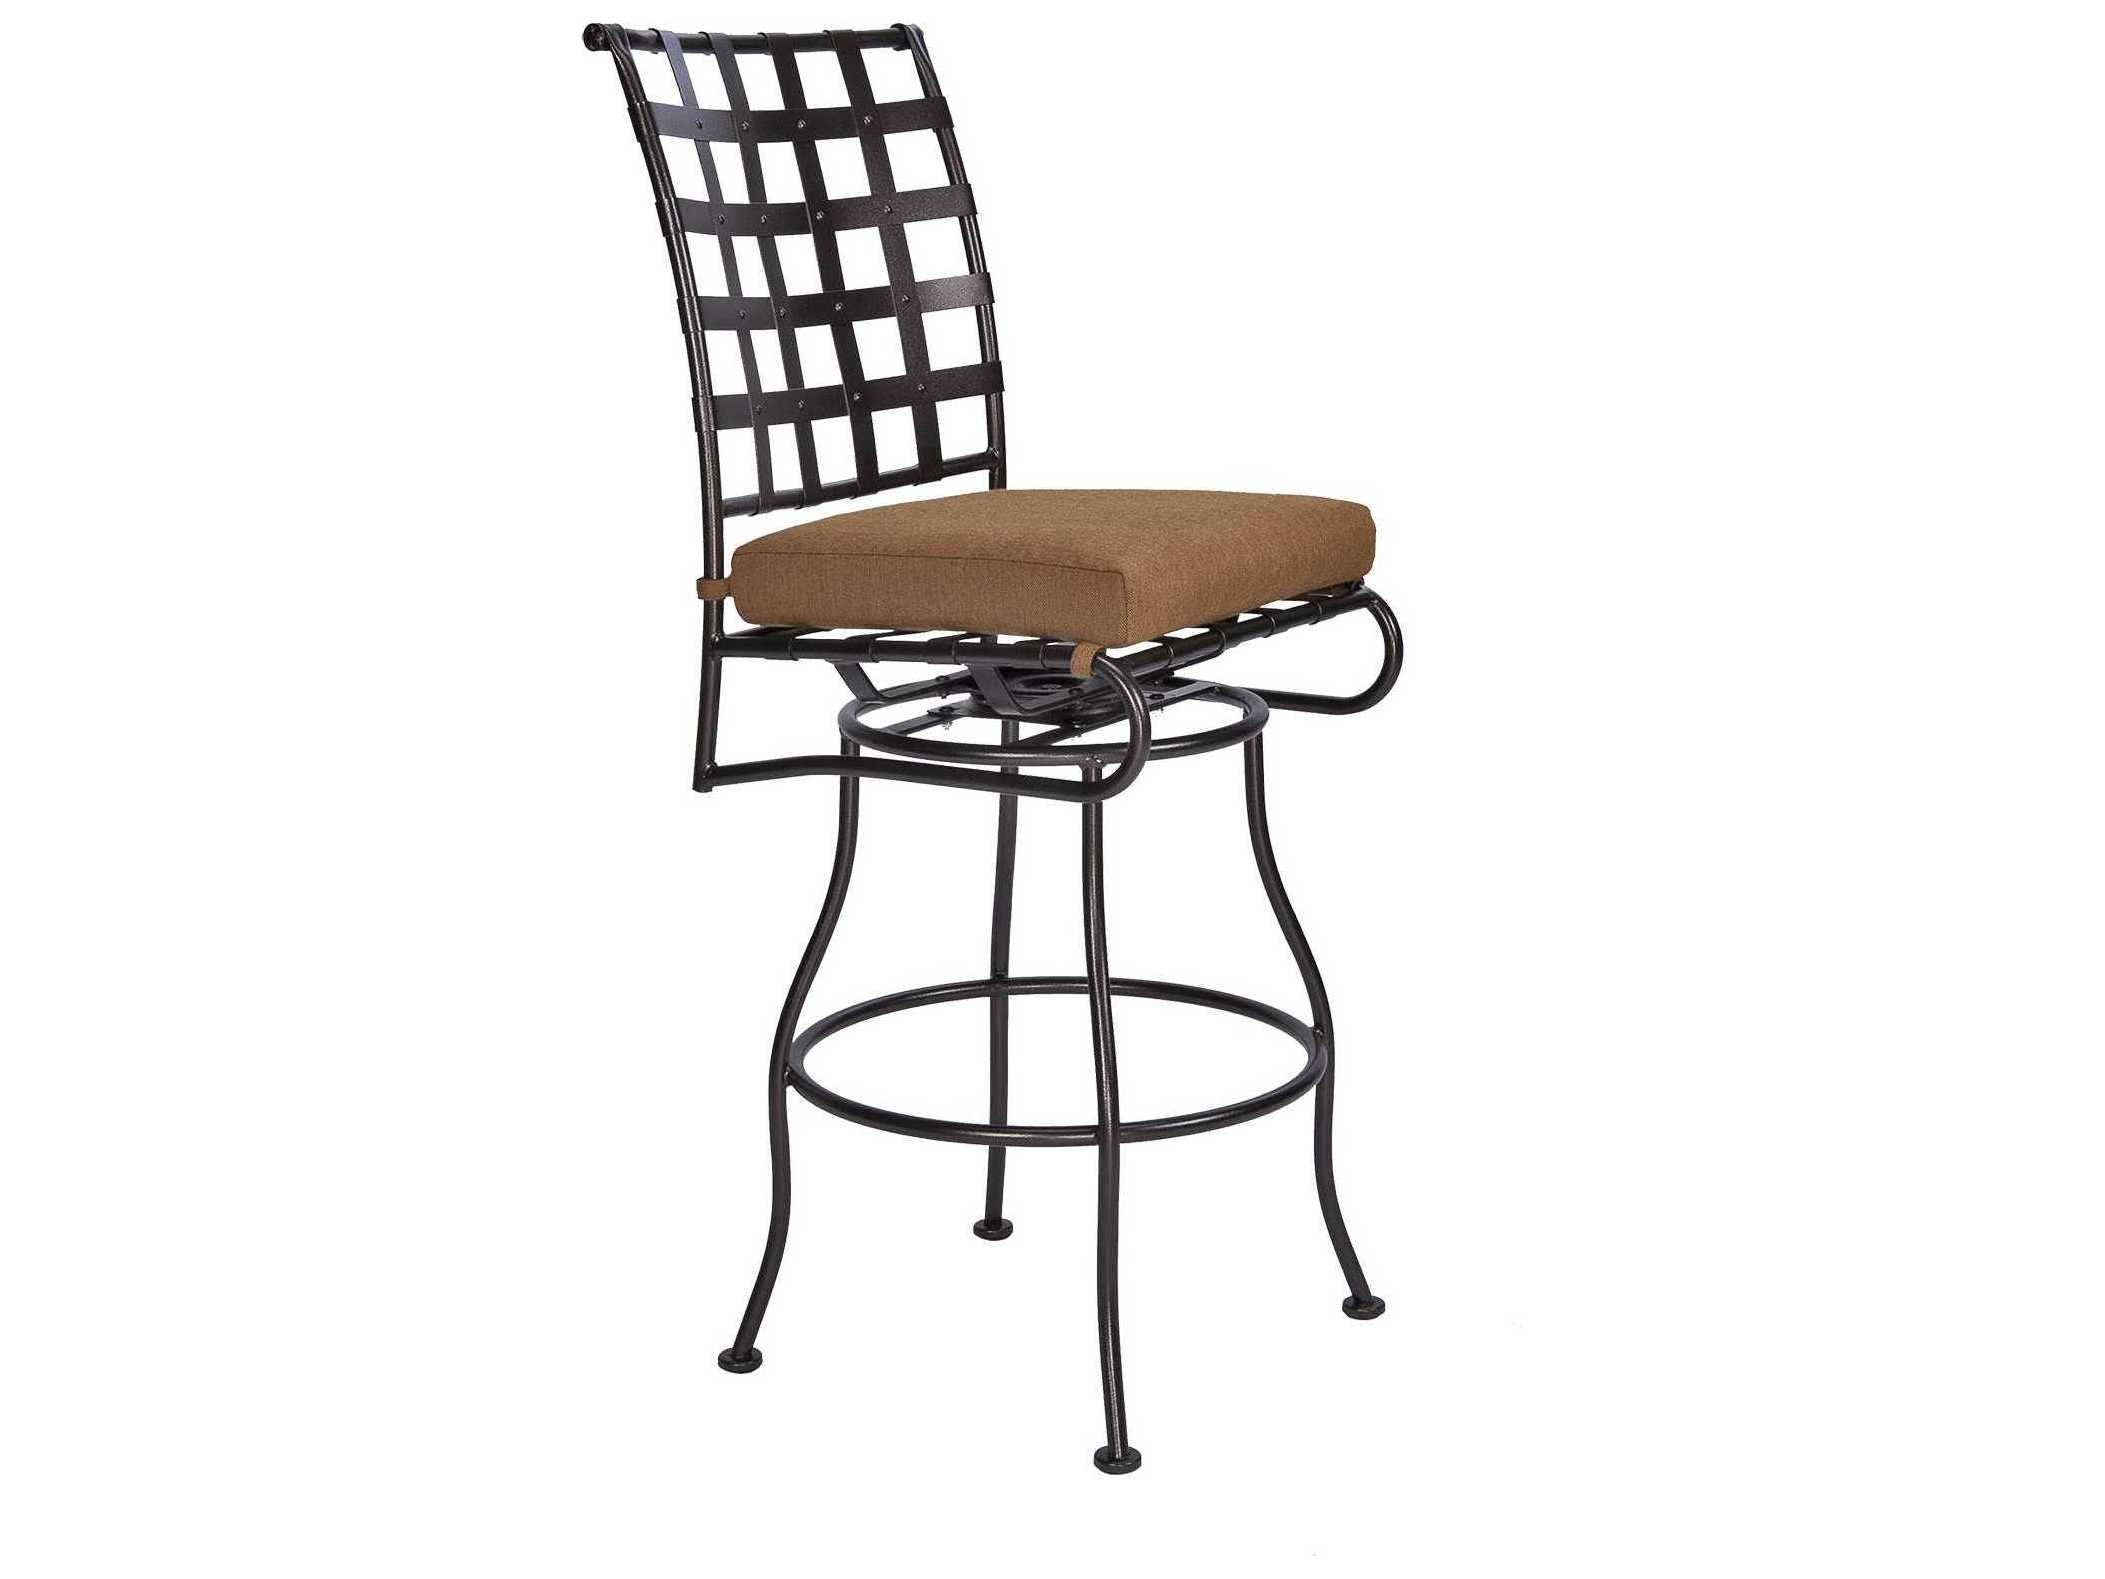 ow lee classico swivel bar stool replacement cushions 951 sbsch. Black Bedroom Furniture Sets. Home Design Ideas